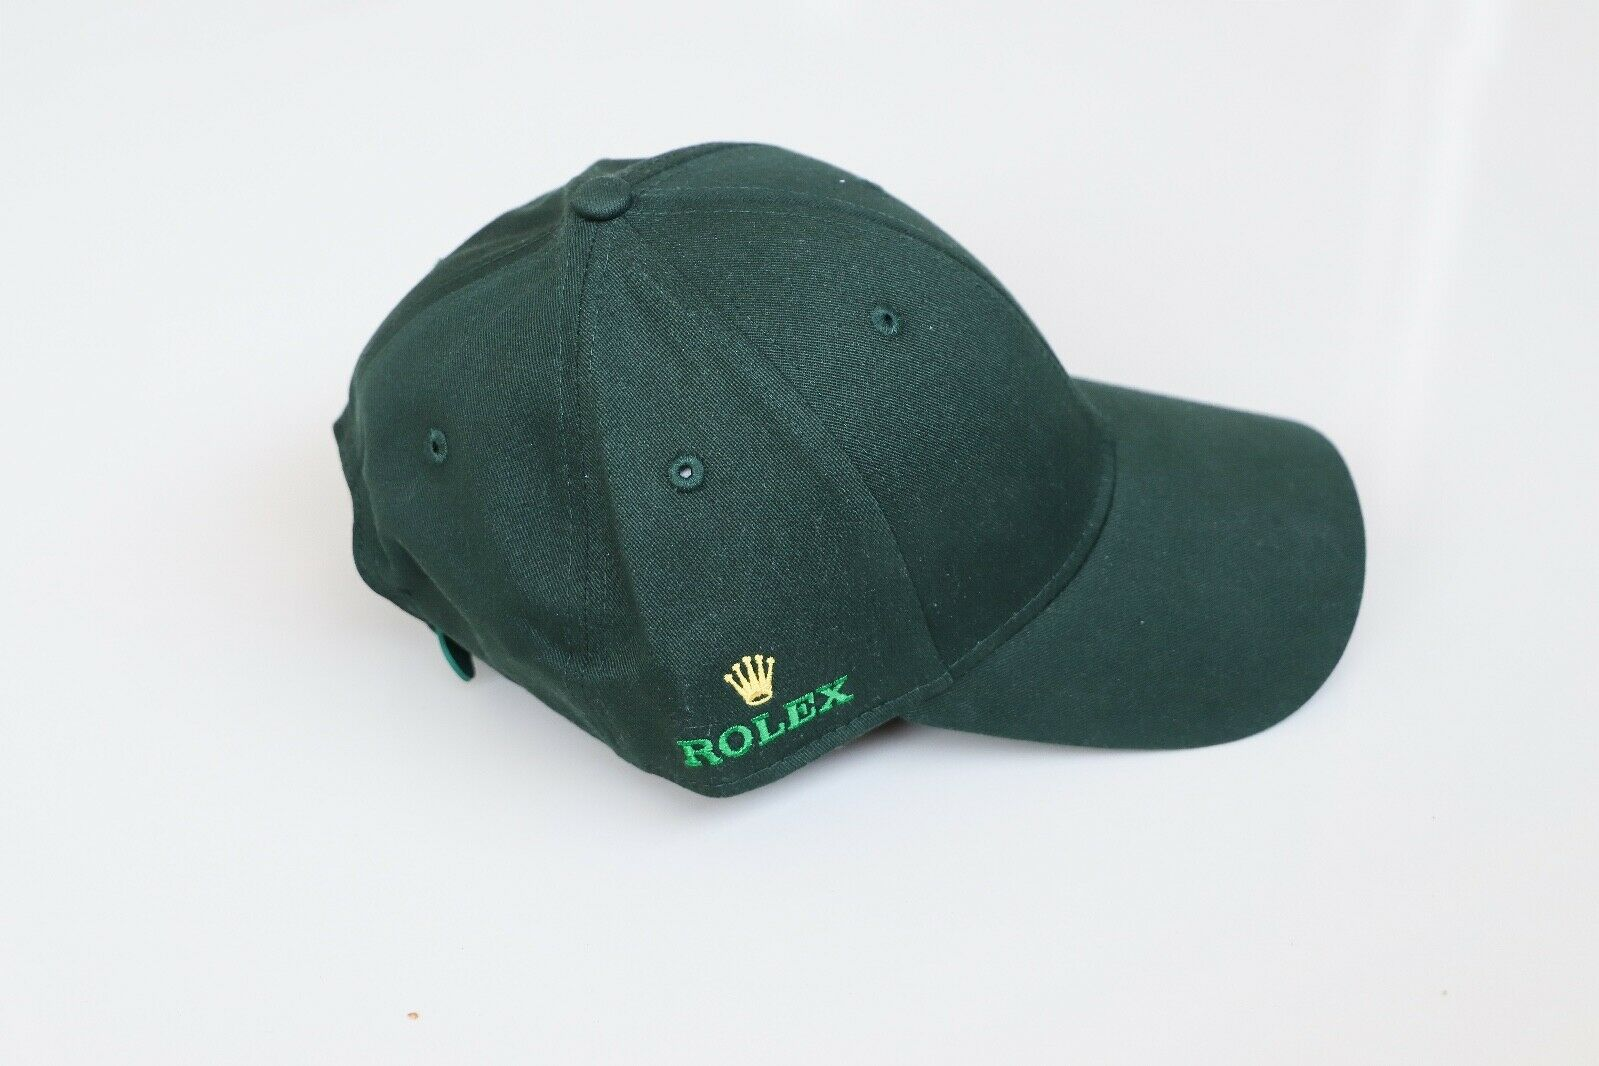 brand new never used Green Rolex cap with logo on both sides.